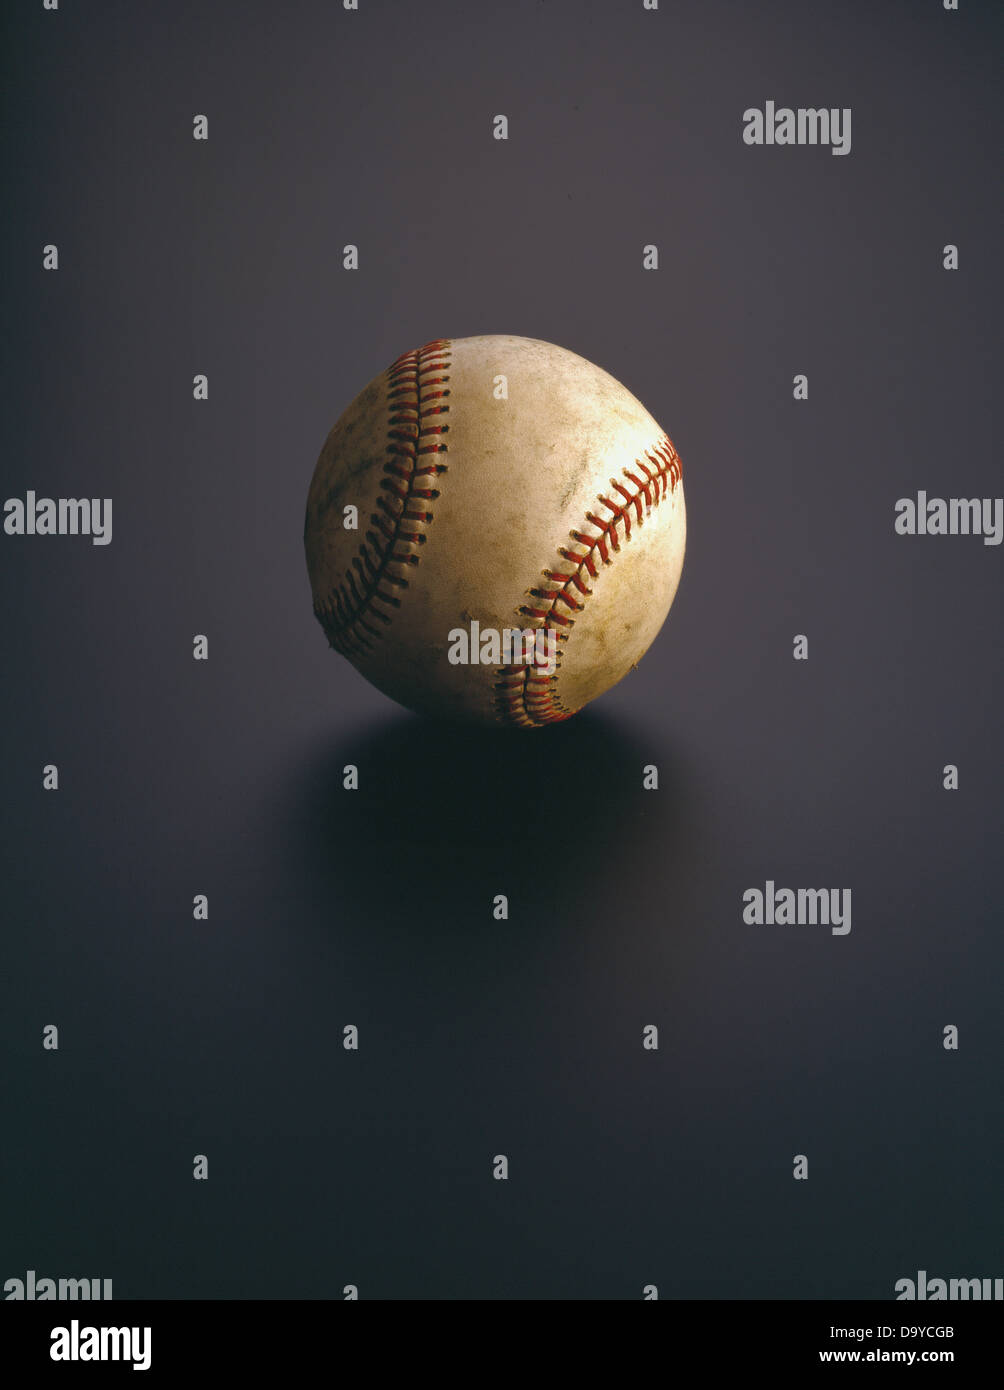 Old Baseball - Stock Image